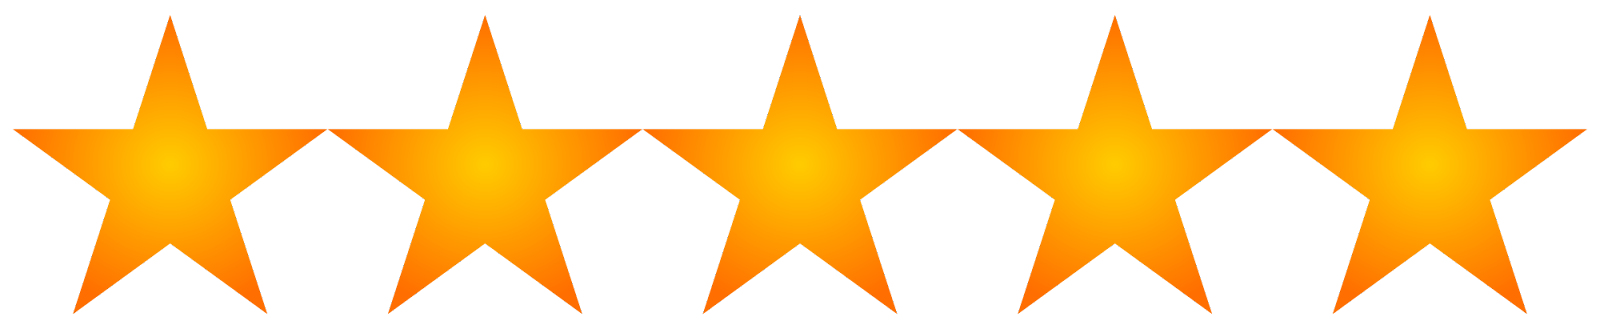 File:5 stars.svg - Wikimedia Commons